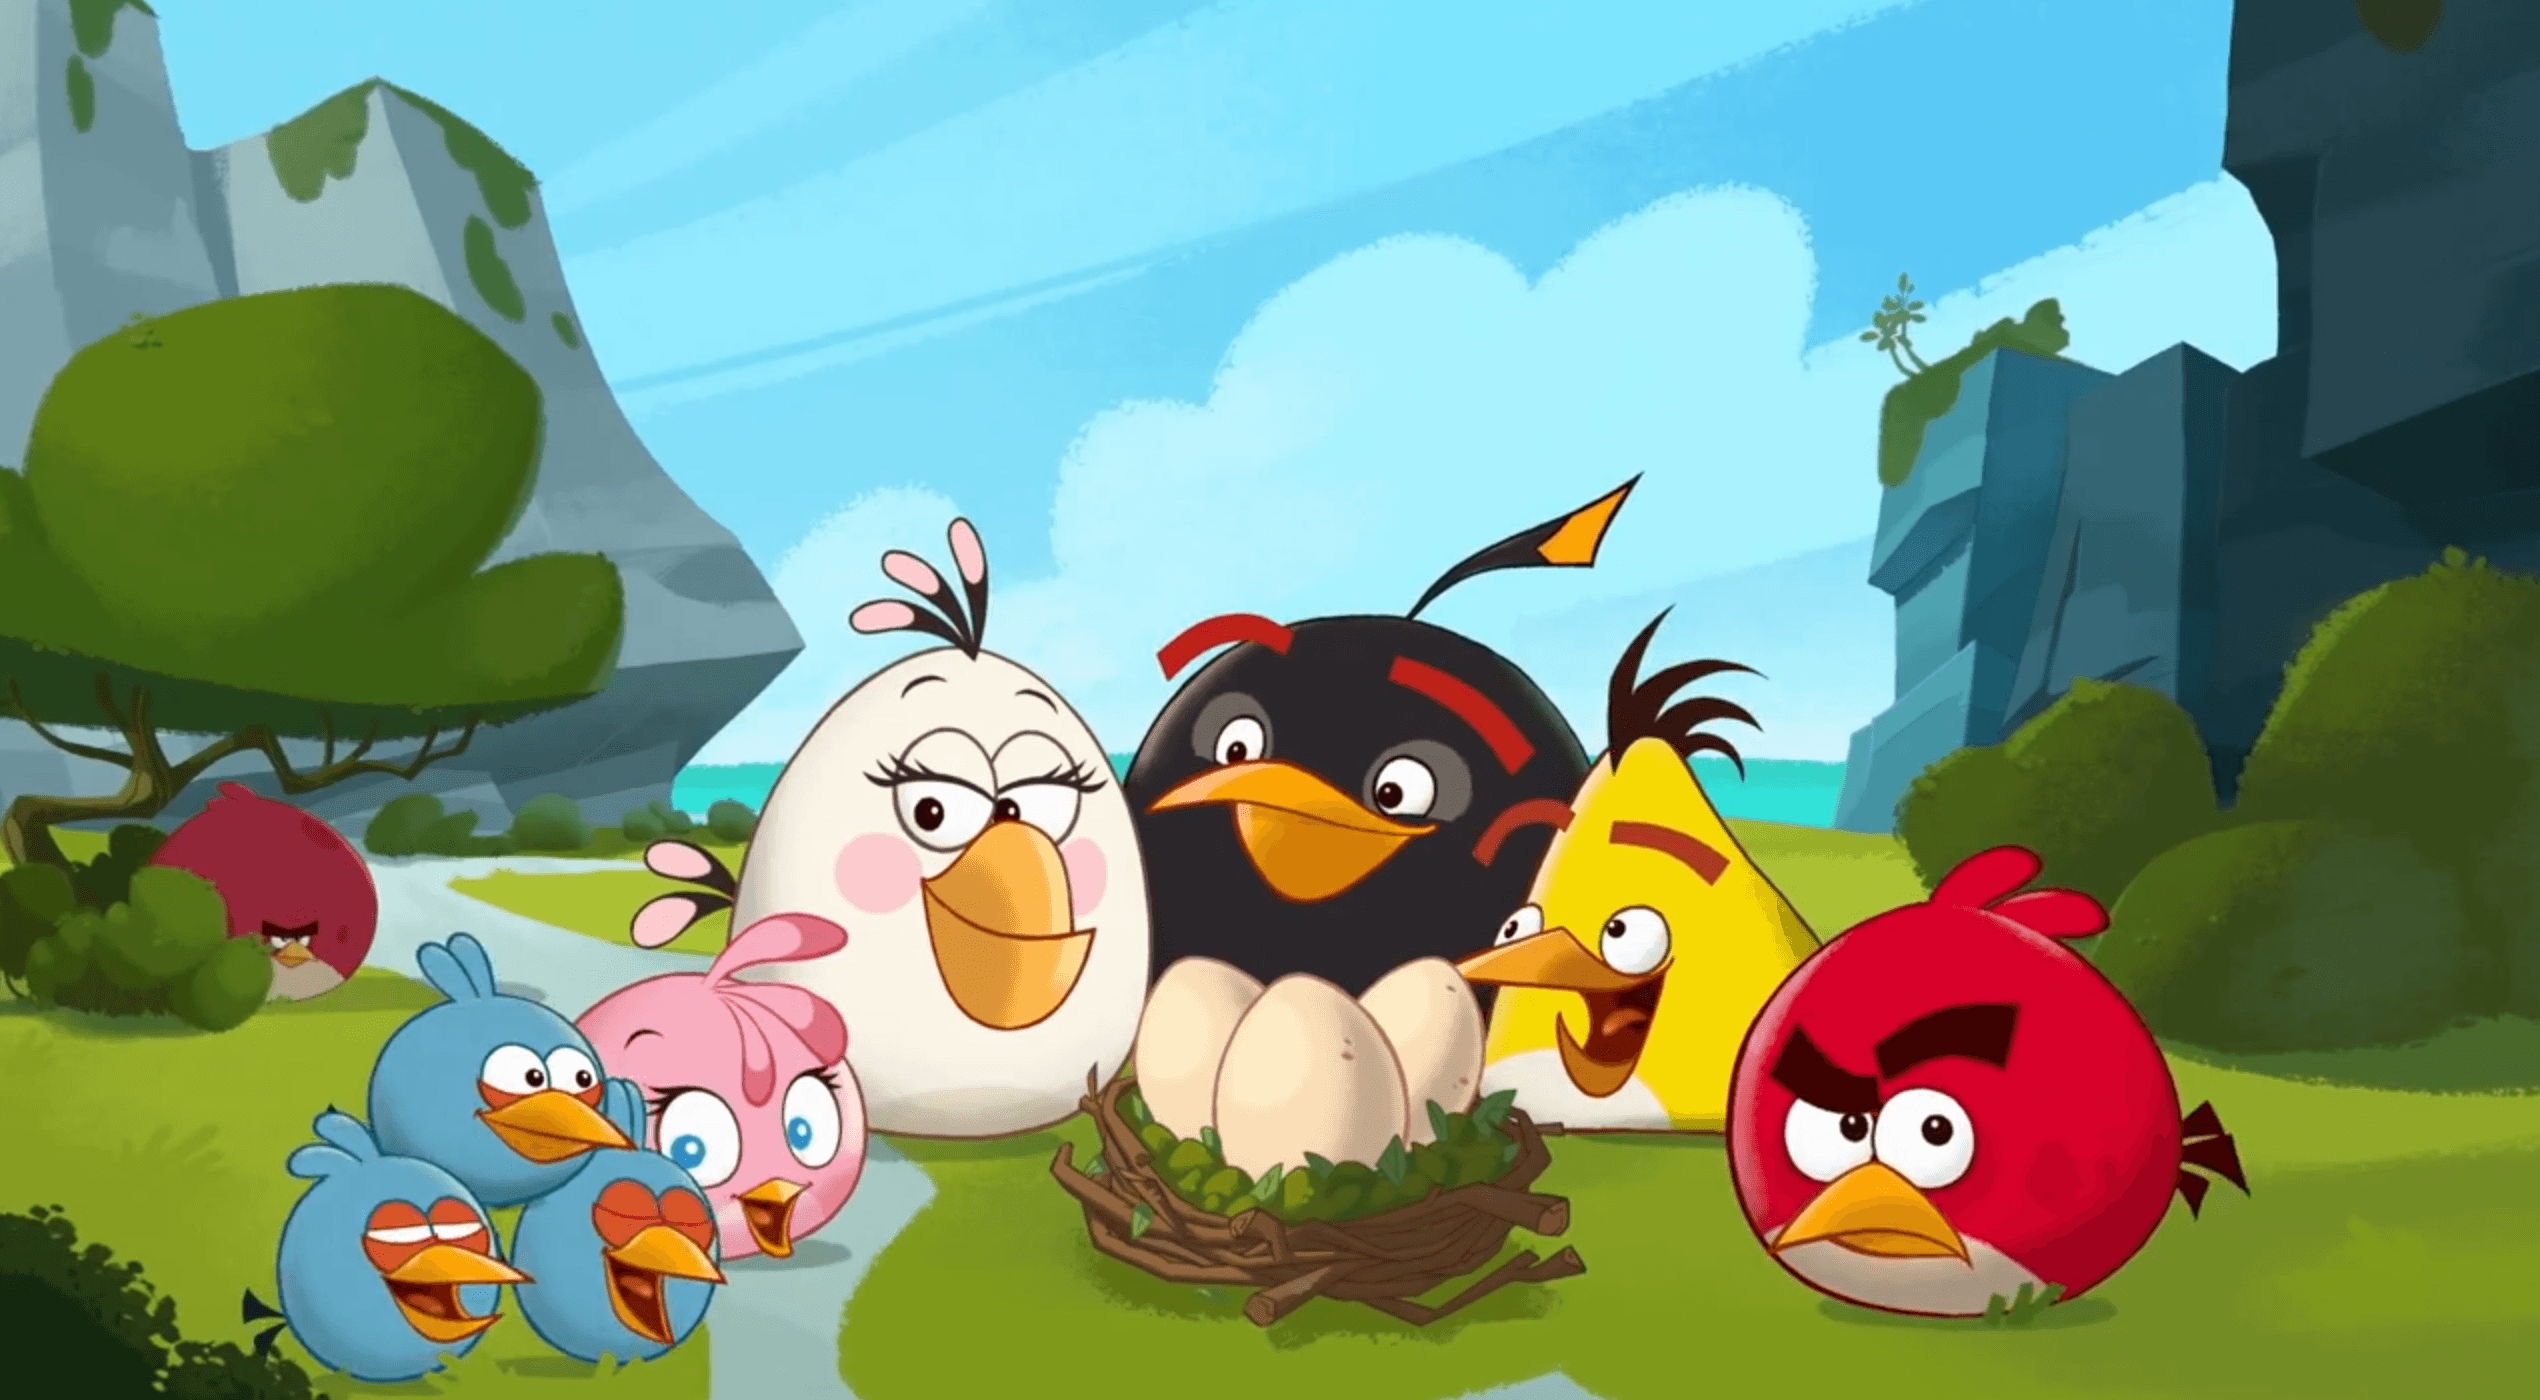 Wallpapers Of Angry Birds - wallpaper hd